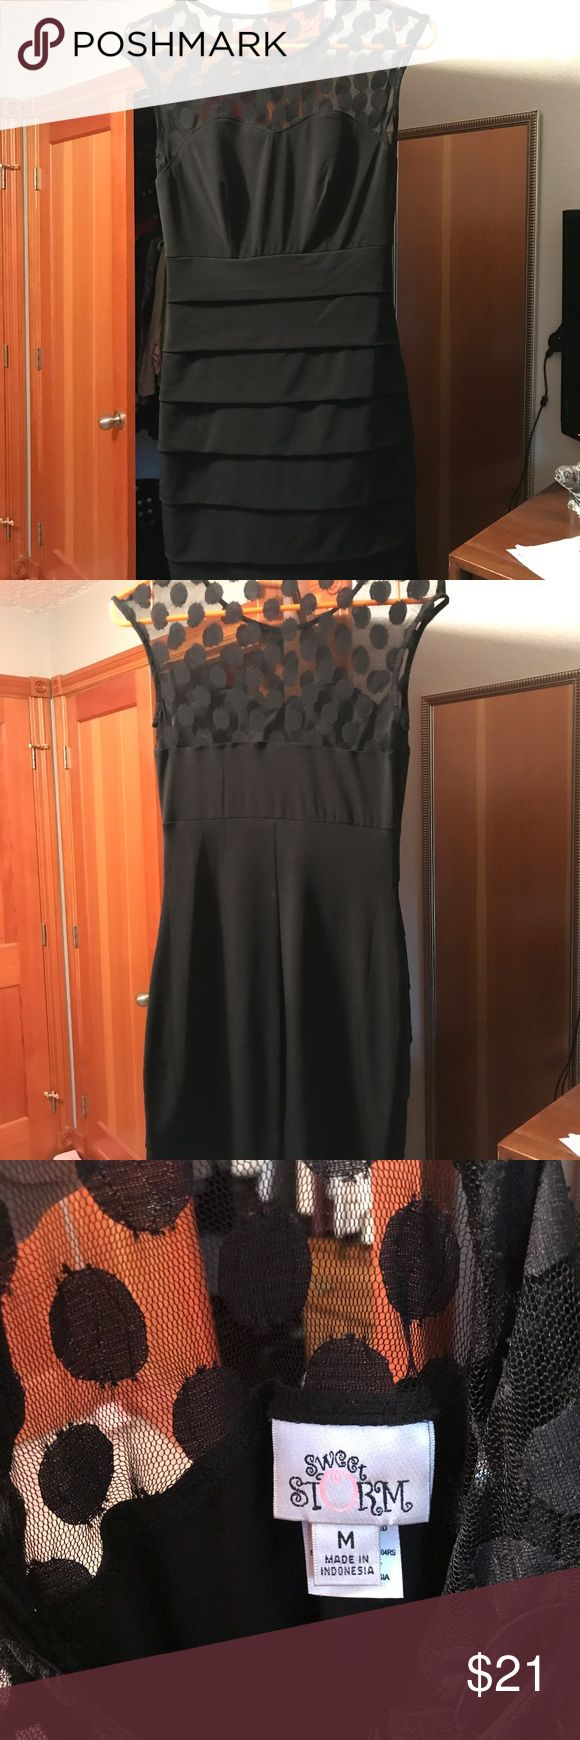 Formal dress, black, size medium I bought this for homecoming but ended up not wearing it because it was too short. The top is mesh with polka dots. there are no tears or damages. Dresses Mini